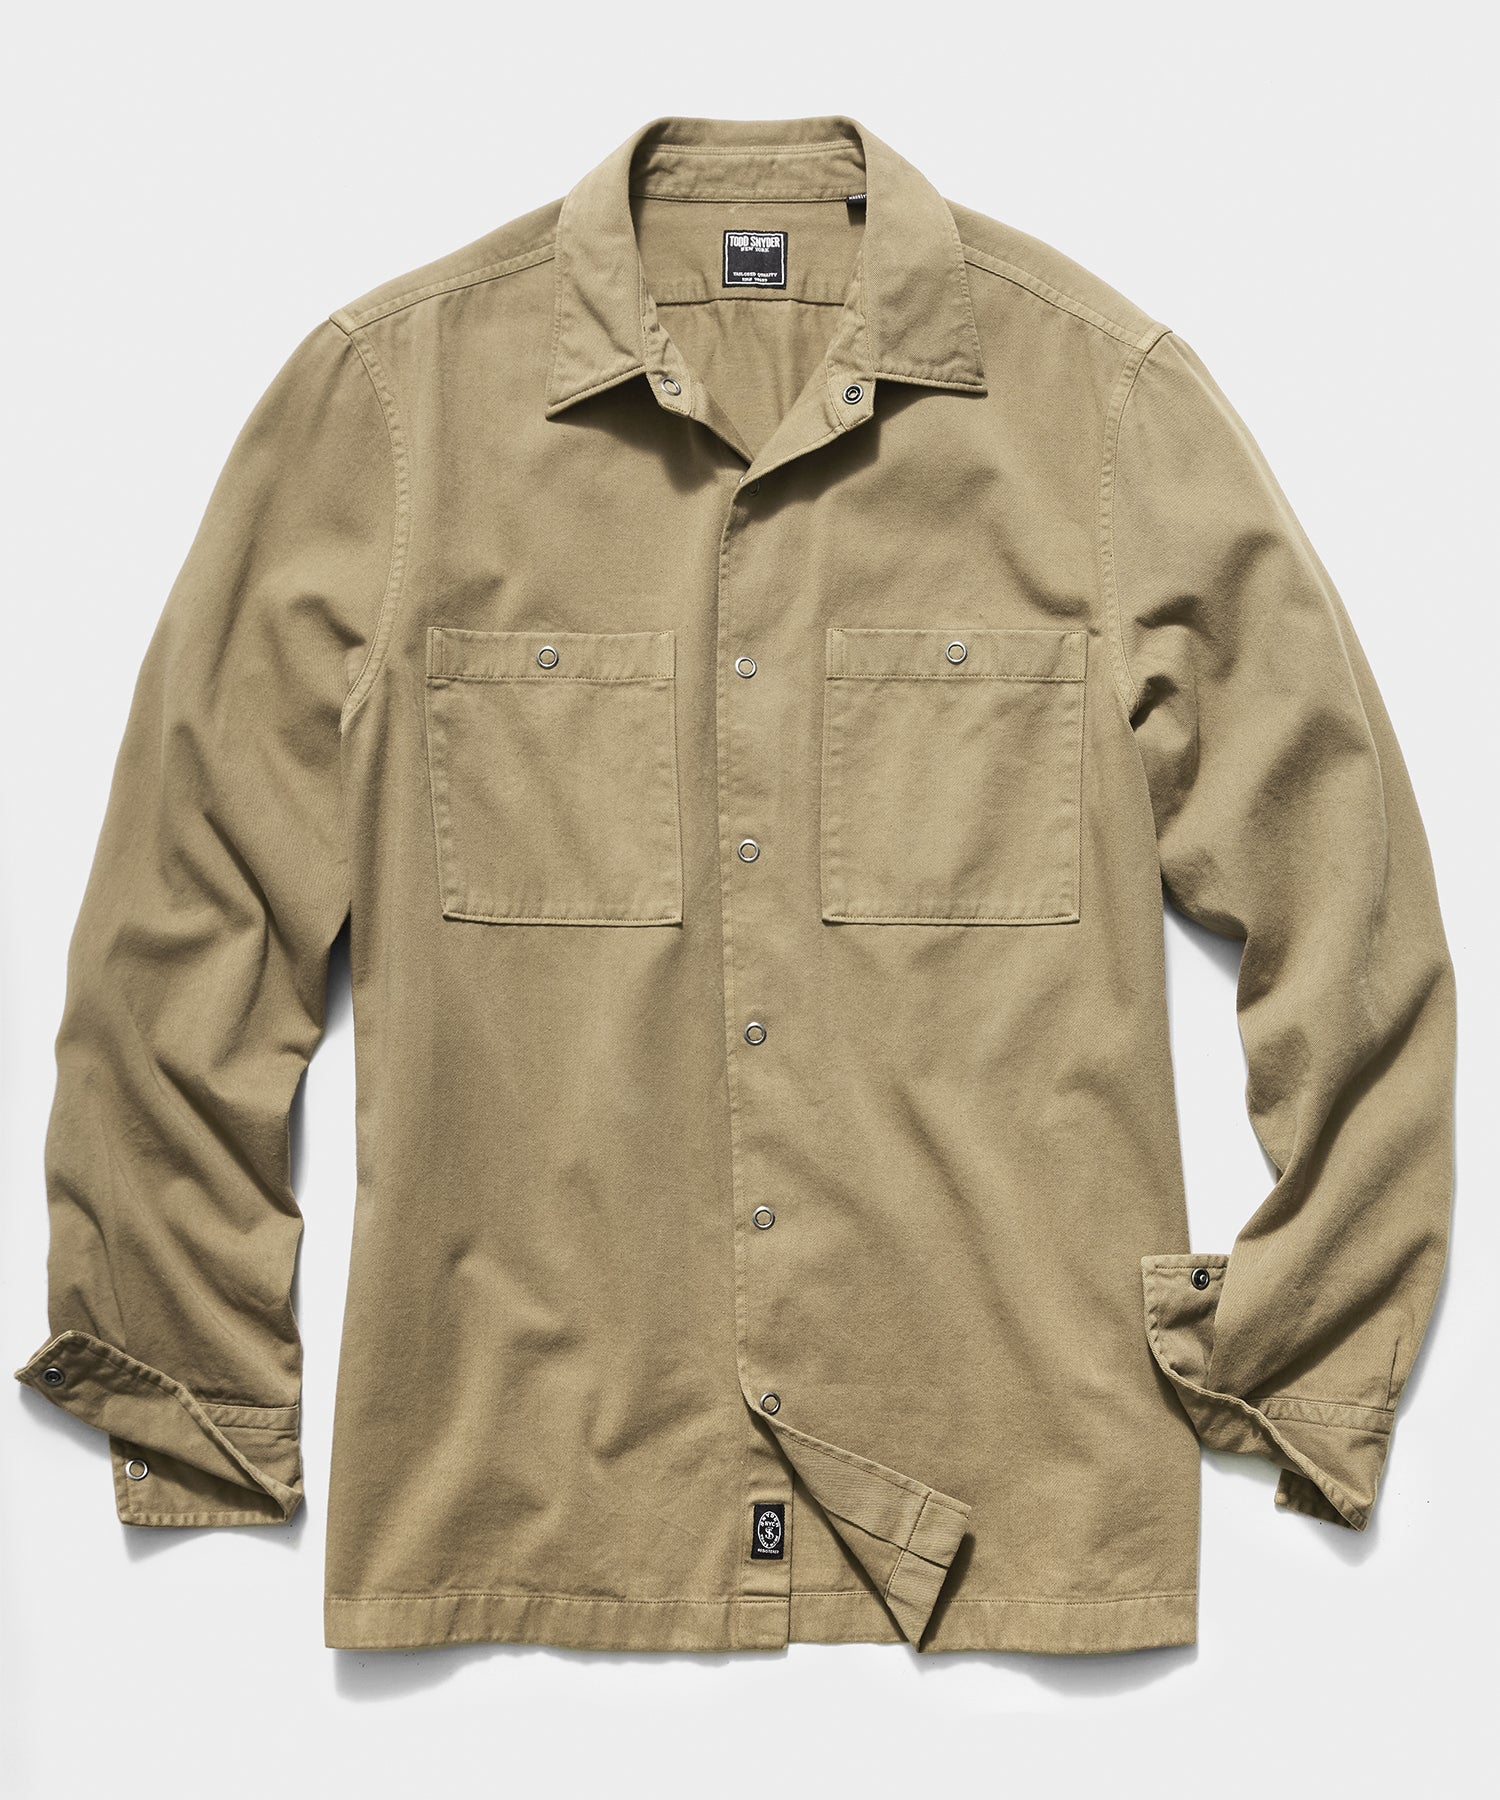 Todd Snyder Workwear Jacket